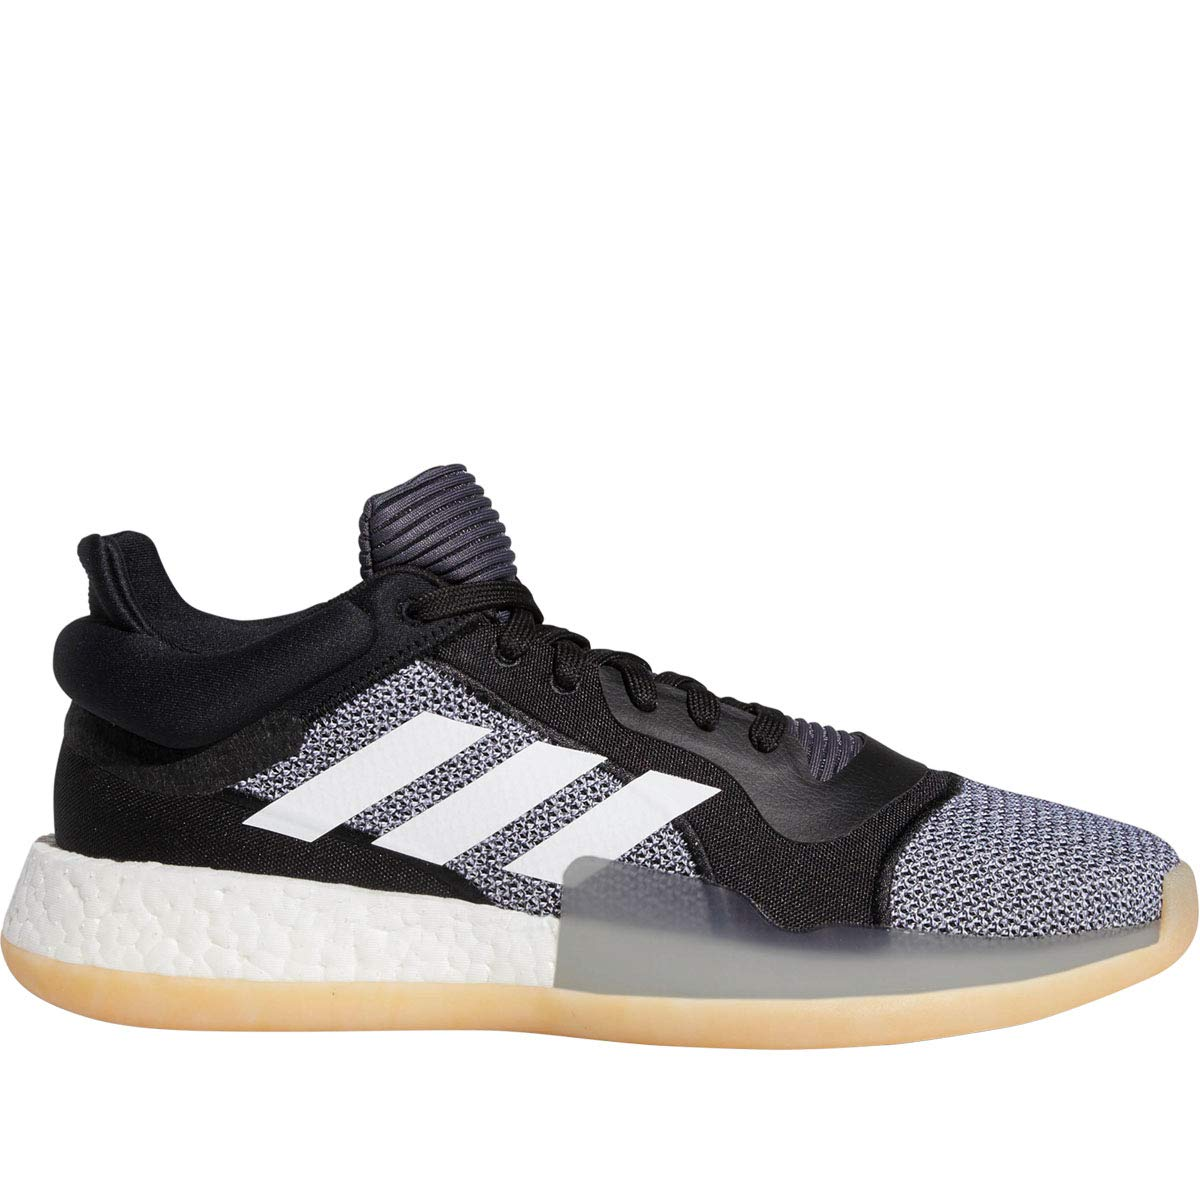 Adidas Marquee Boost Low 49 1 3-UK 13,5